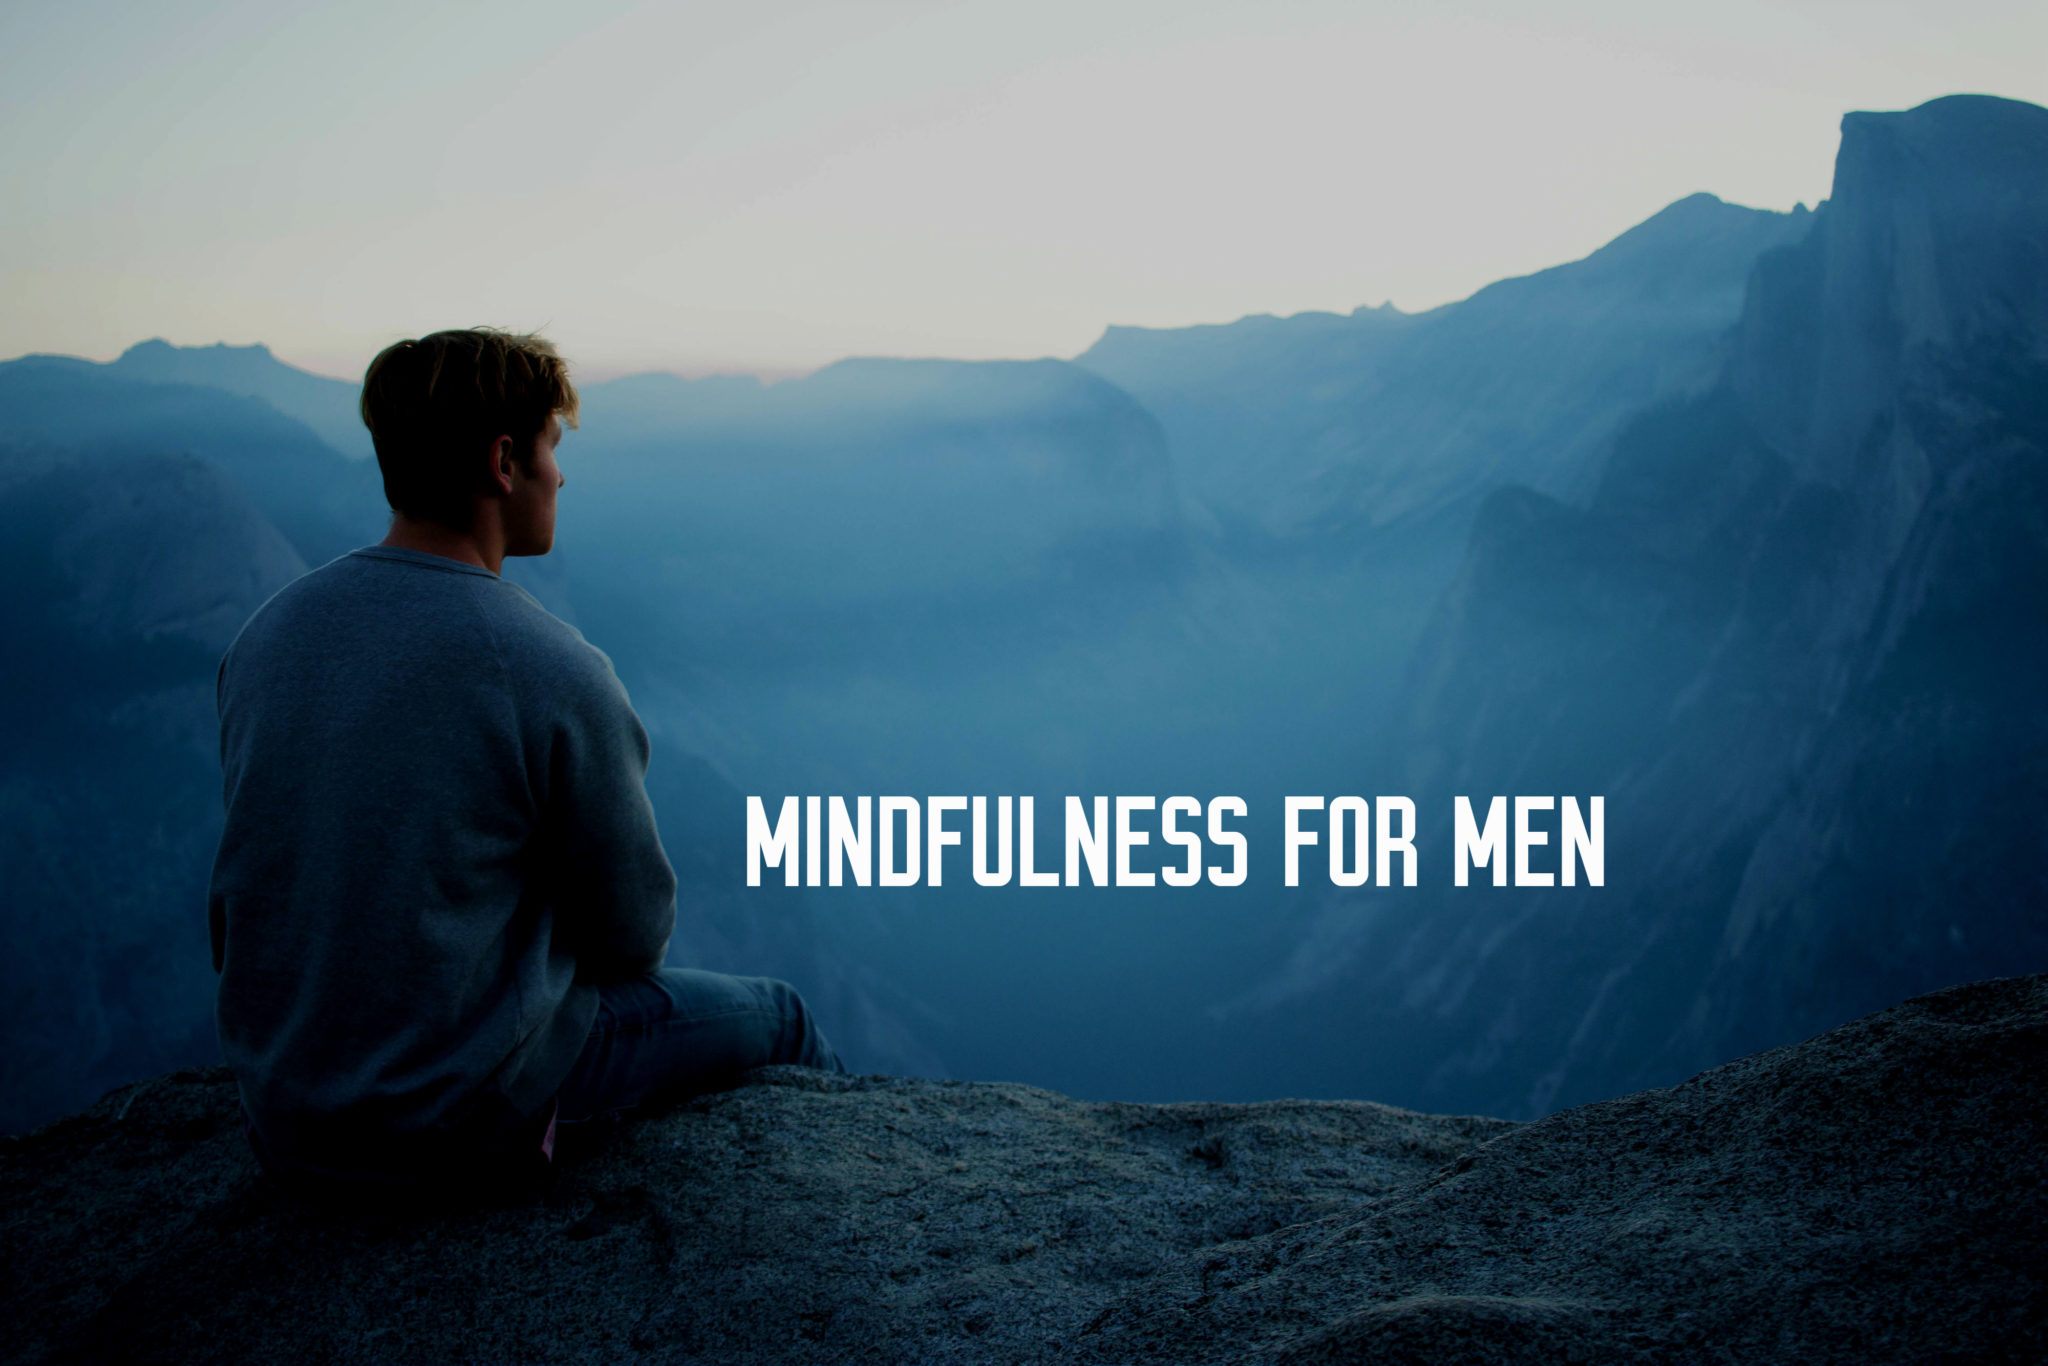 mindfulness for men